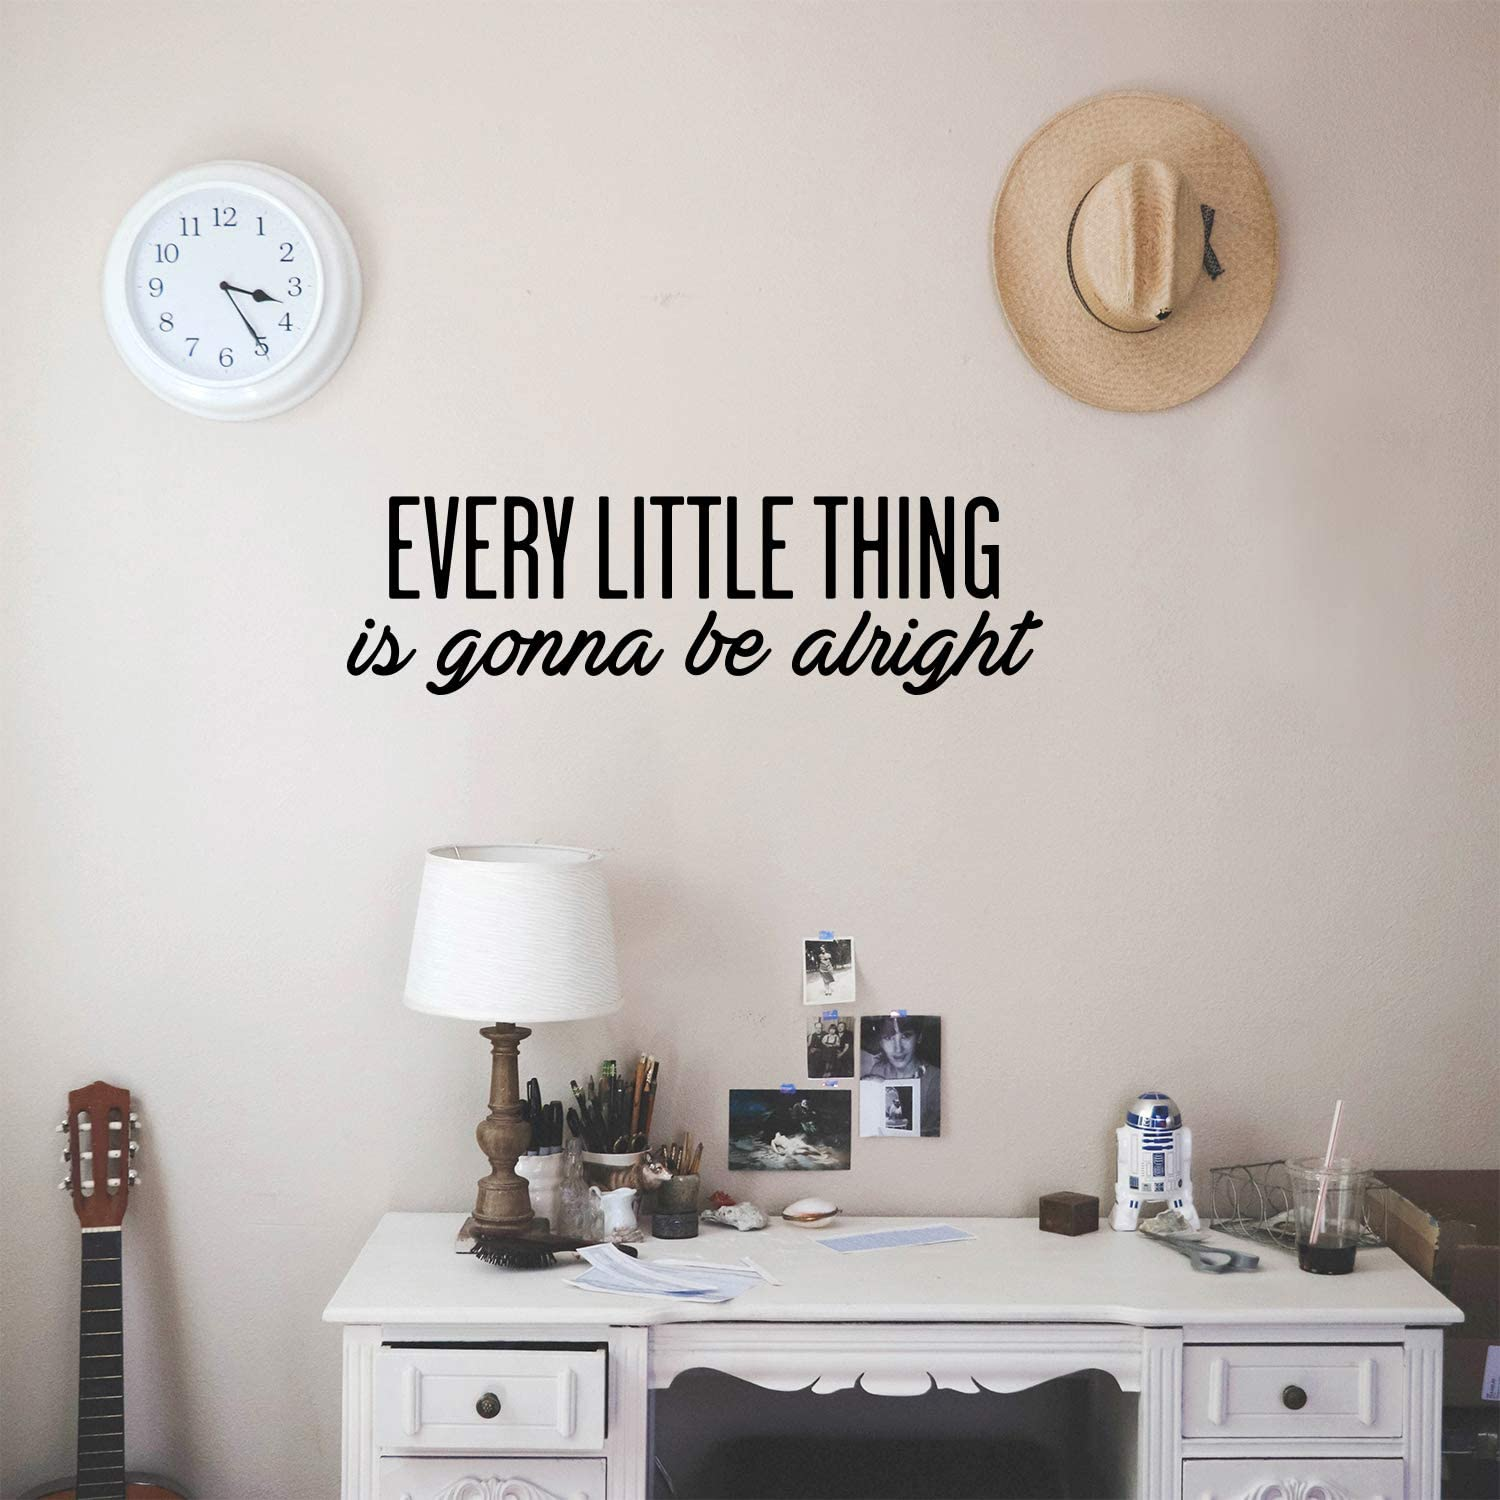 "Vinyl Wall Art Decal - Every Little Thing is Gonna Be Alright - 7"" x 25"" - Modern Cute Optimistic Quote Sticker for Bedroom Closet Living Room Playroom Office Classroom School Coffee Shop Decor"